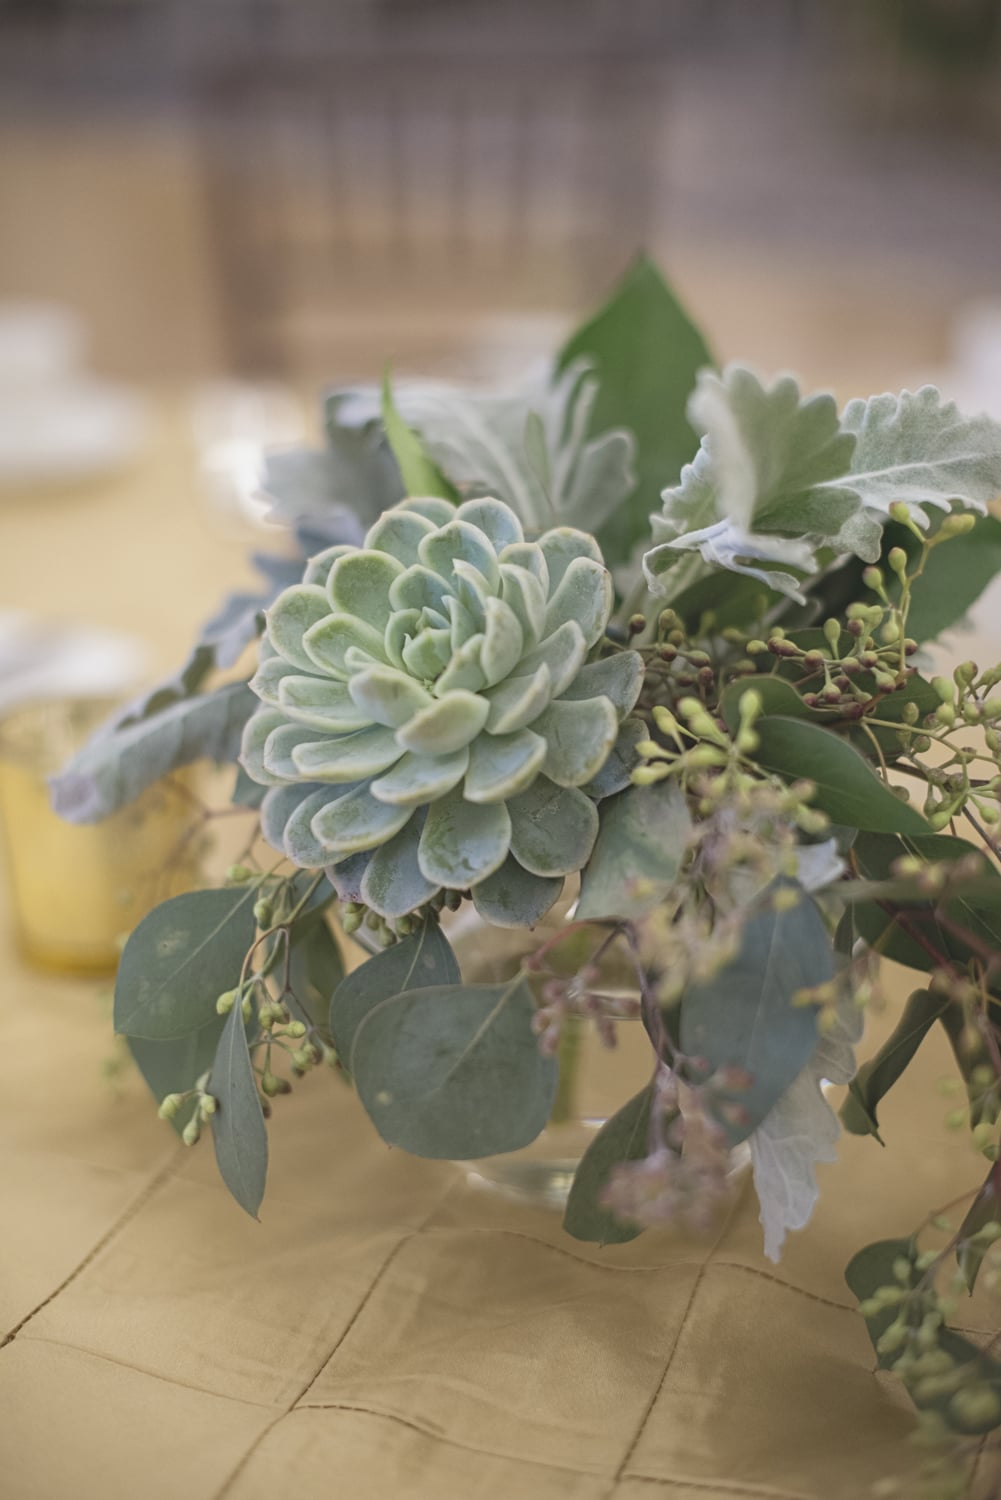 Particular How To Choose Winter Wedding Flowers Aleen Floral Designfeature How To Choose Winter Wedding Flowers Aleen Floral Winter Wedding Flowers Uk Winter Wedding Flowers 2018 wedding Winter Wedding Flowers